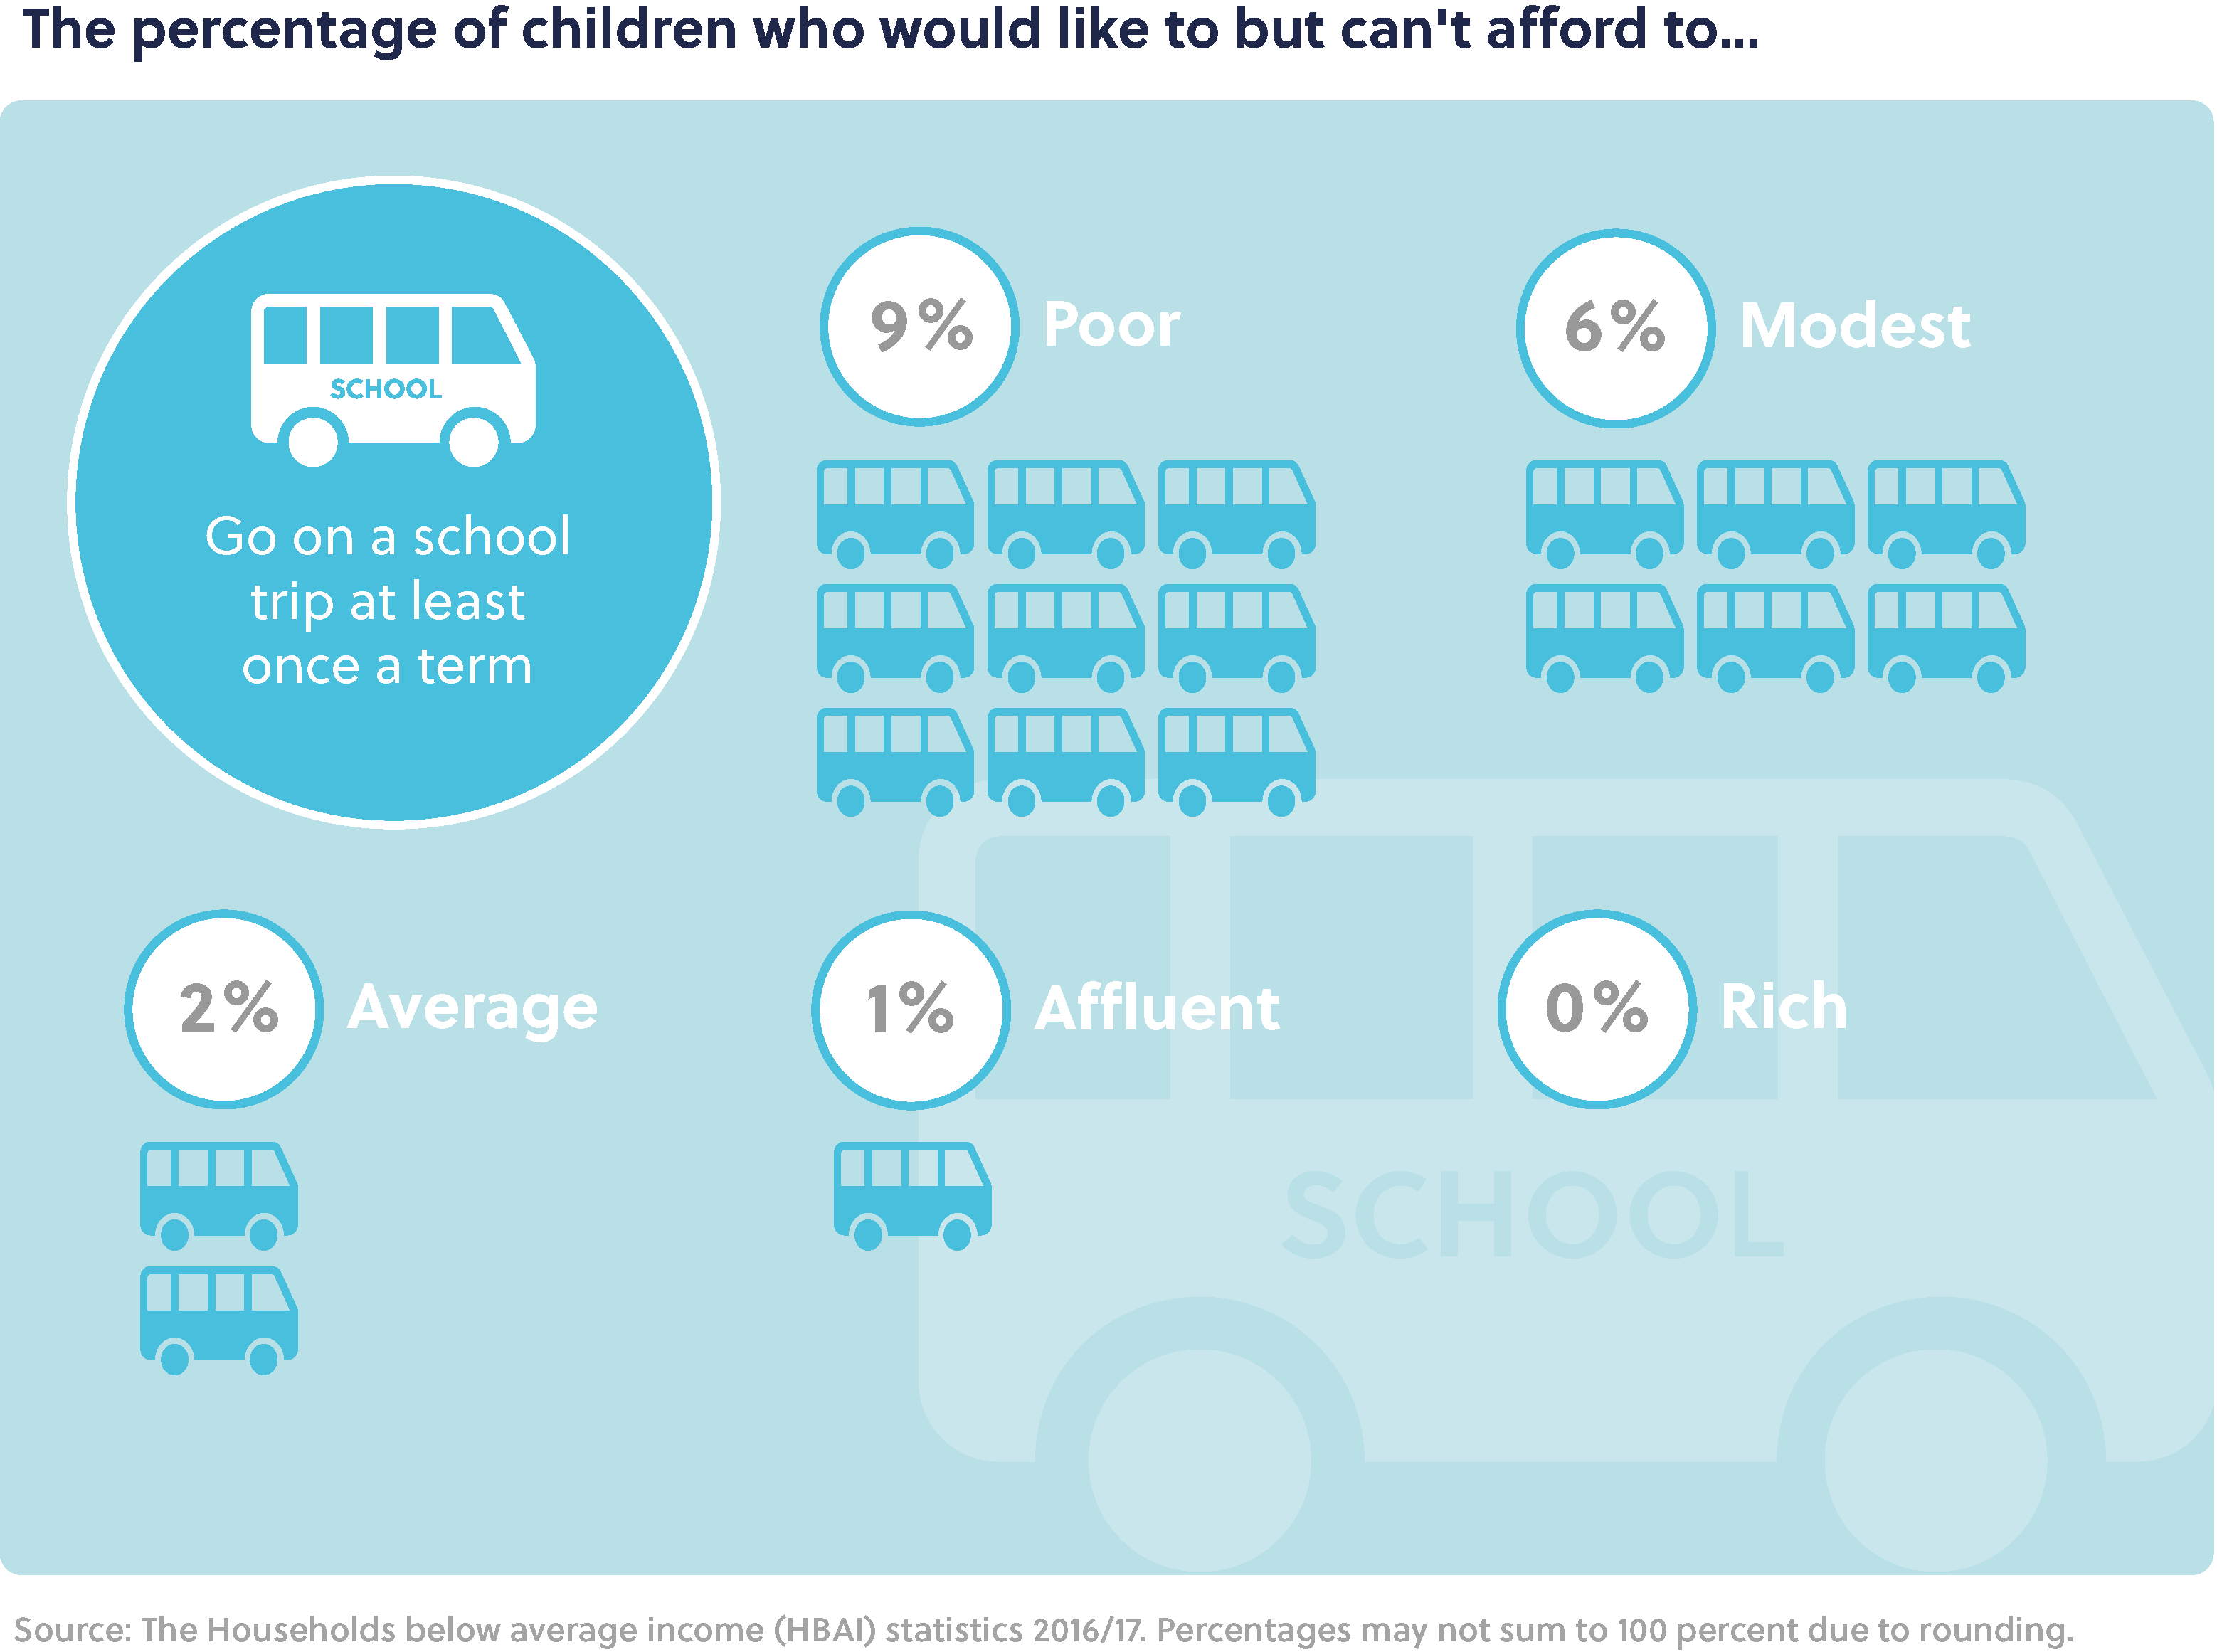 Main title: The percentage of children who would like to but can't afford to... Sub-heading: Go on a school trip at least once a term. Poor: 9%, Modest: 6%, Average: 2%, Affluent: 1%, and Rich: 0%.  Source: The Households below average income (HBAI) statistics 2016/17. Percentages may not sum to 100 percent due to rounding.